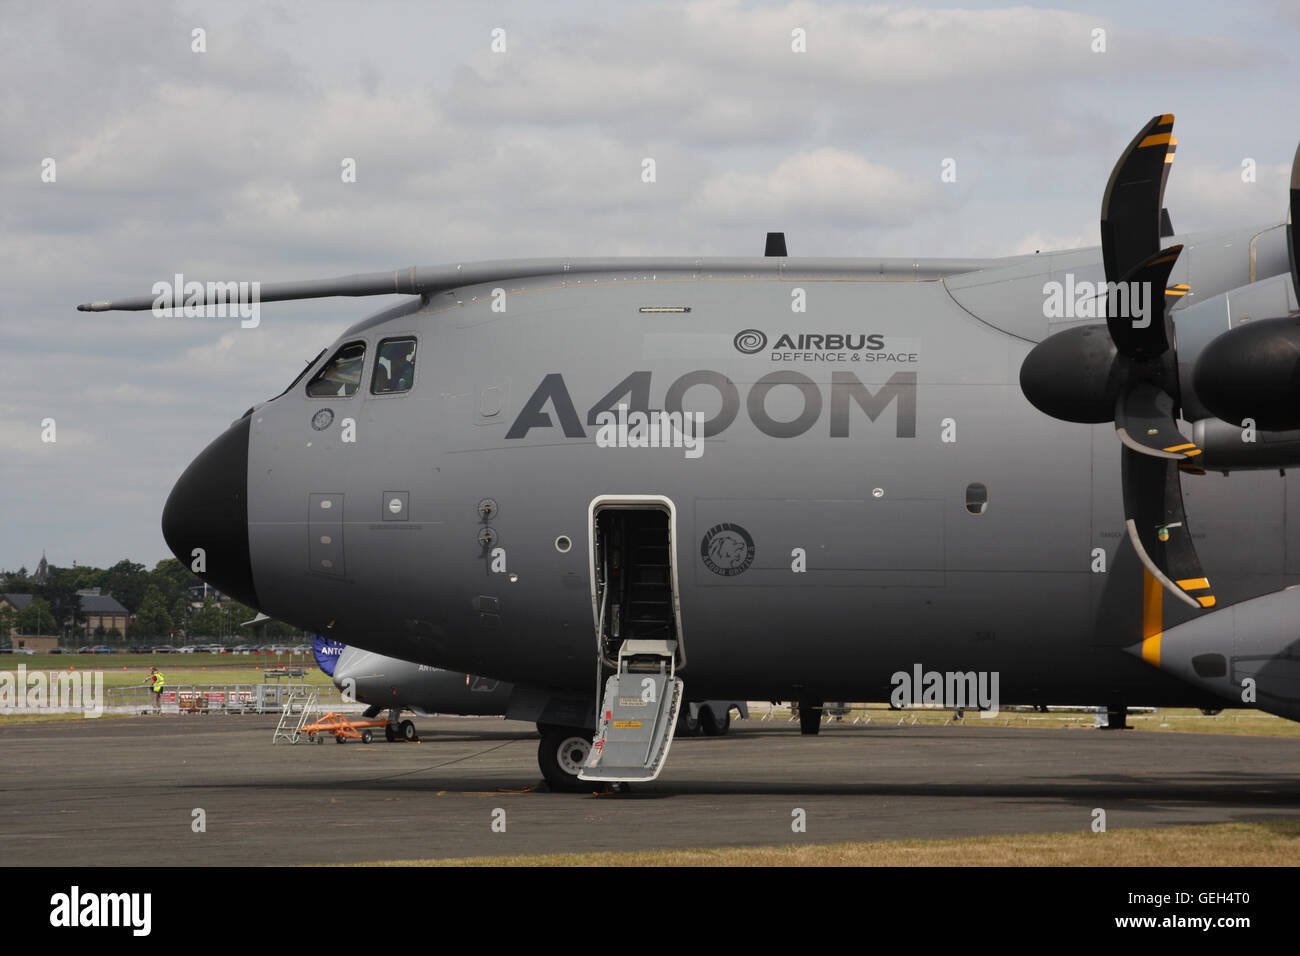 A400M MILITARY TRANSPORT PLANE - Stock Image